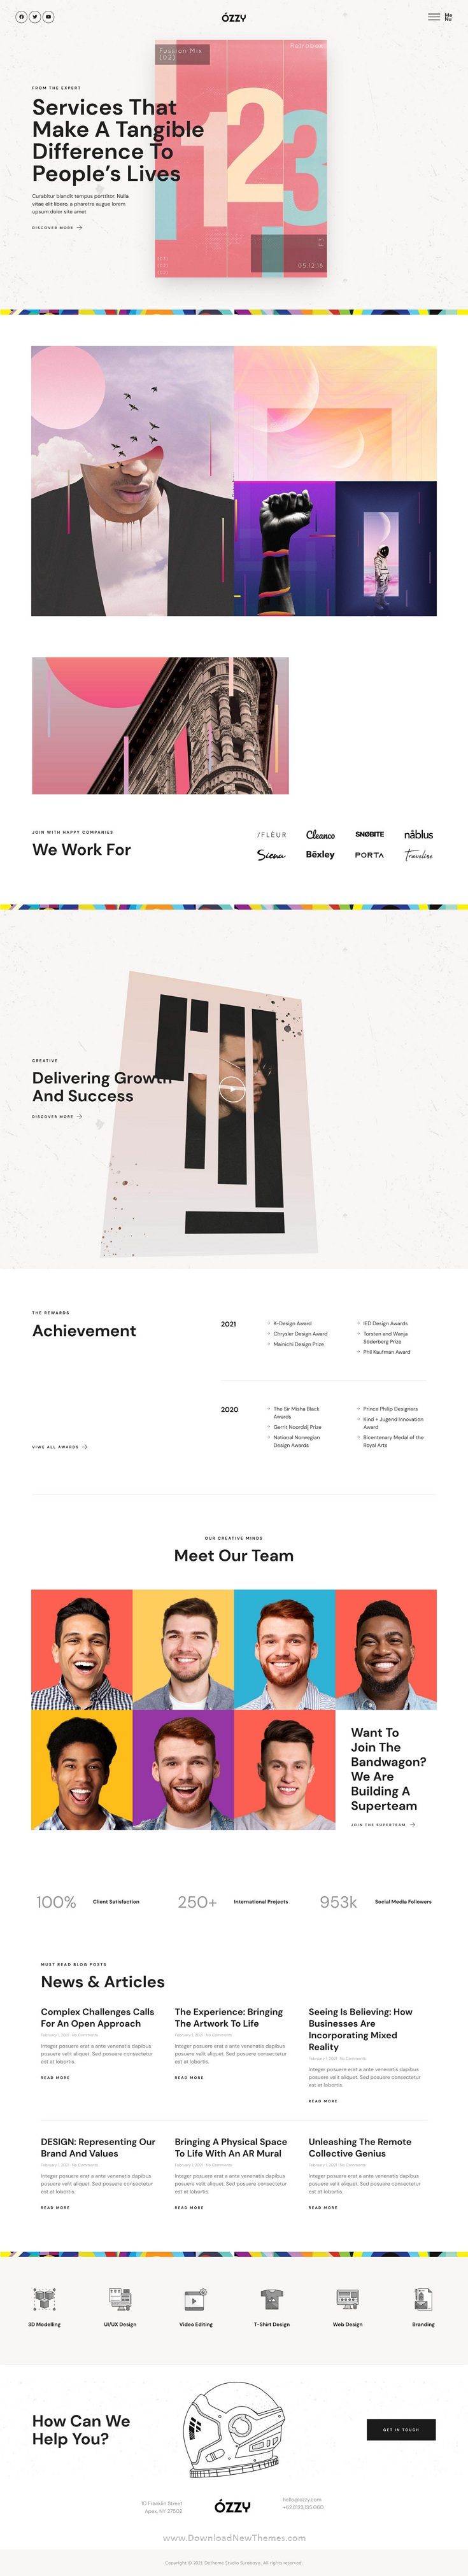 Graphic Design Firm and Agency Template Kit